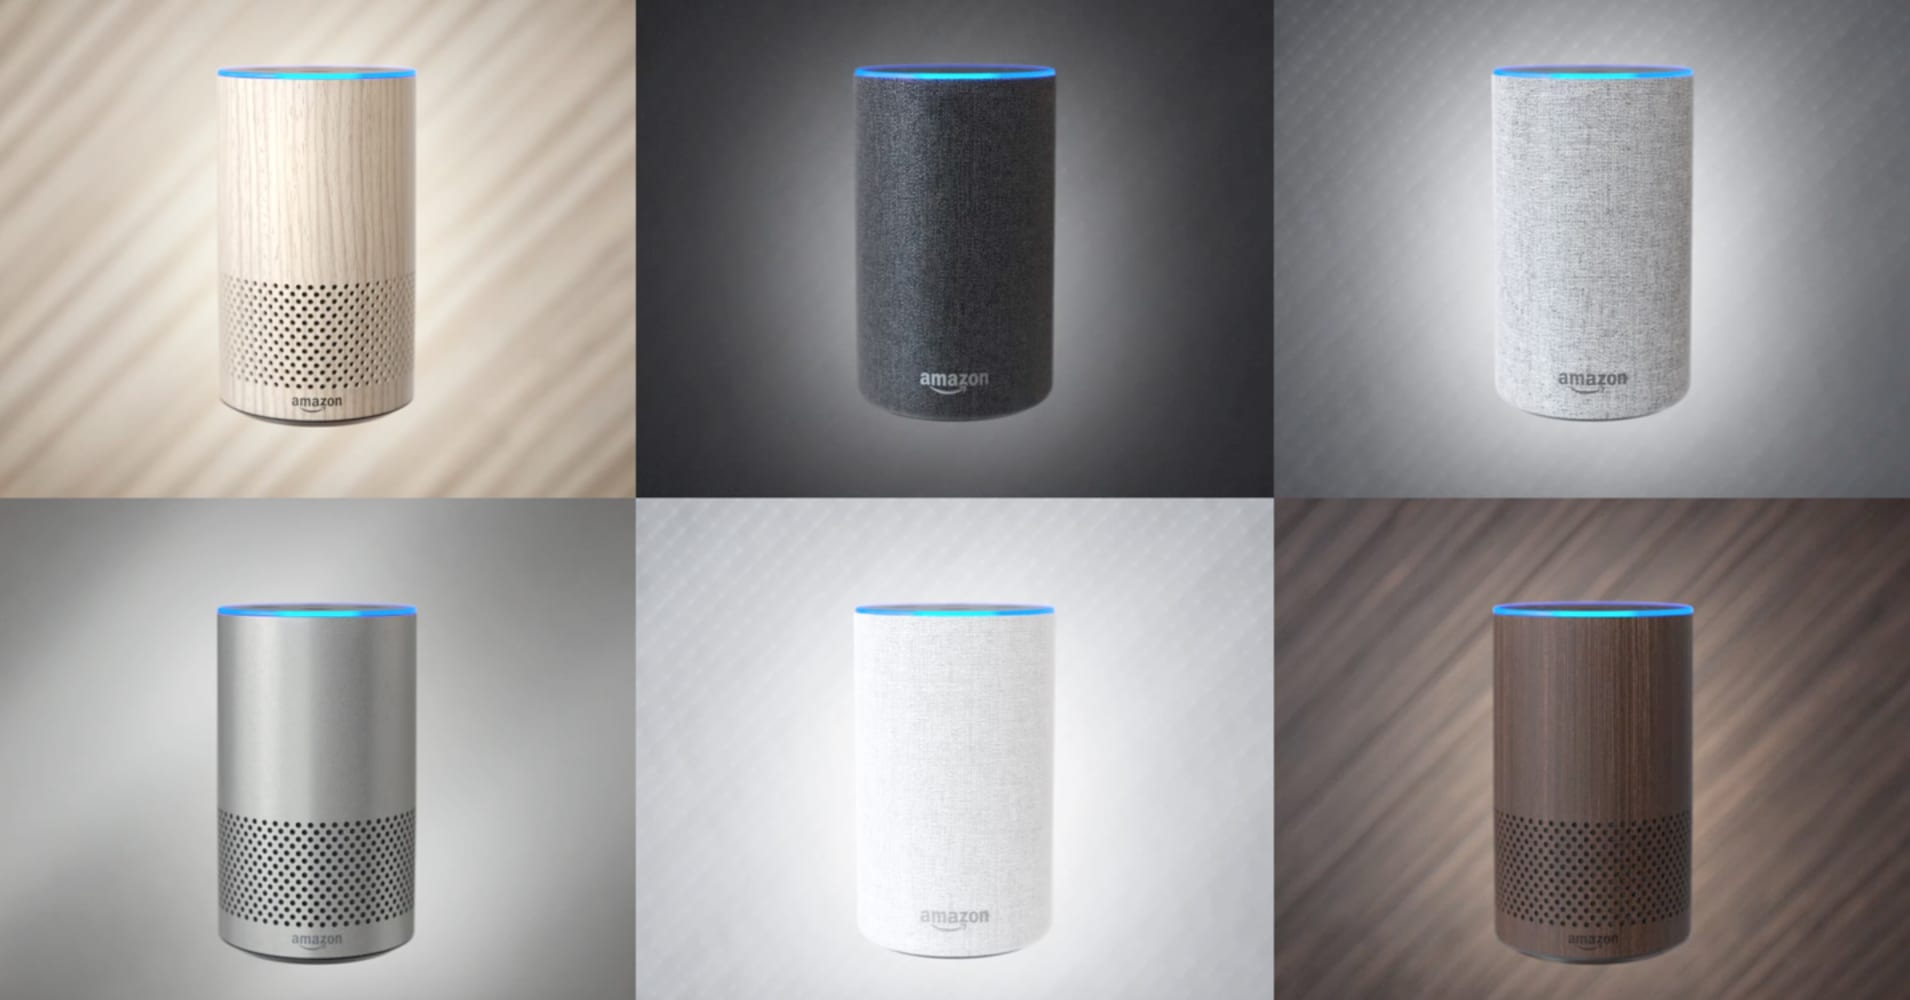 Amazon is winning the smart home speaker wars by a huge margin